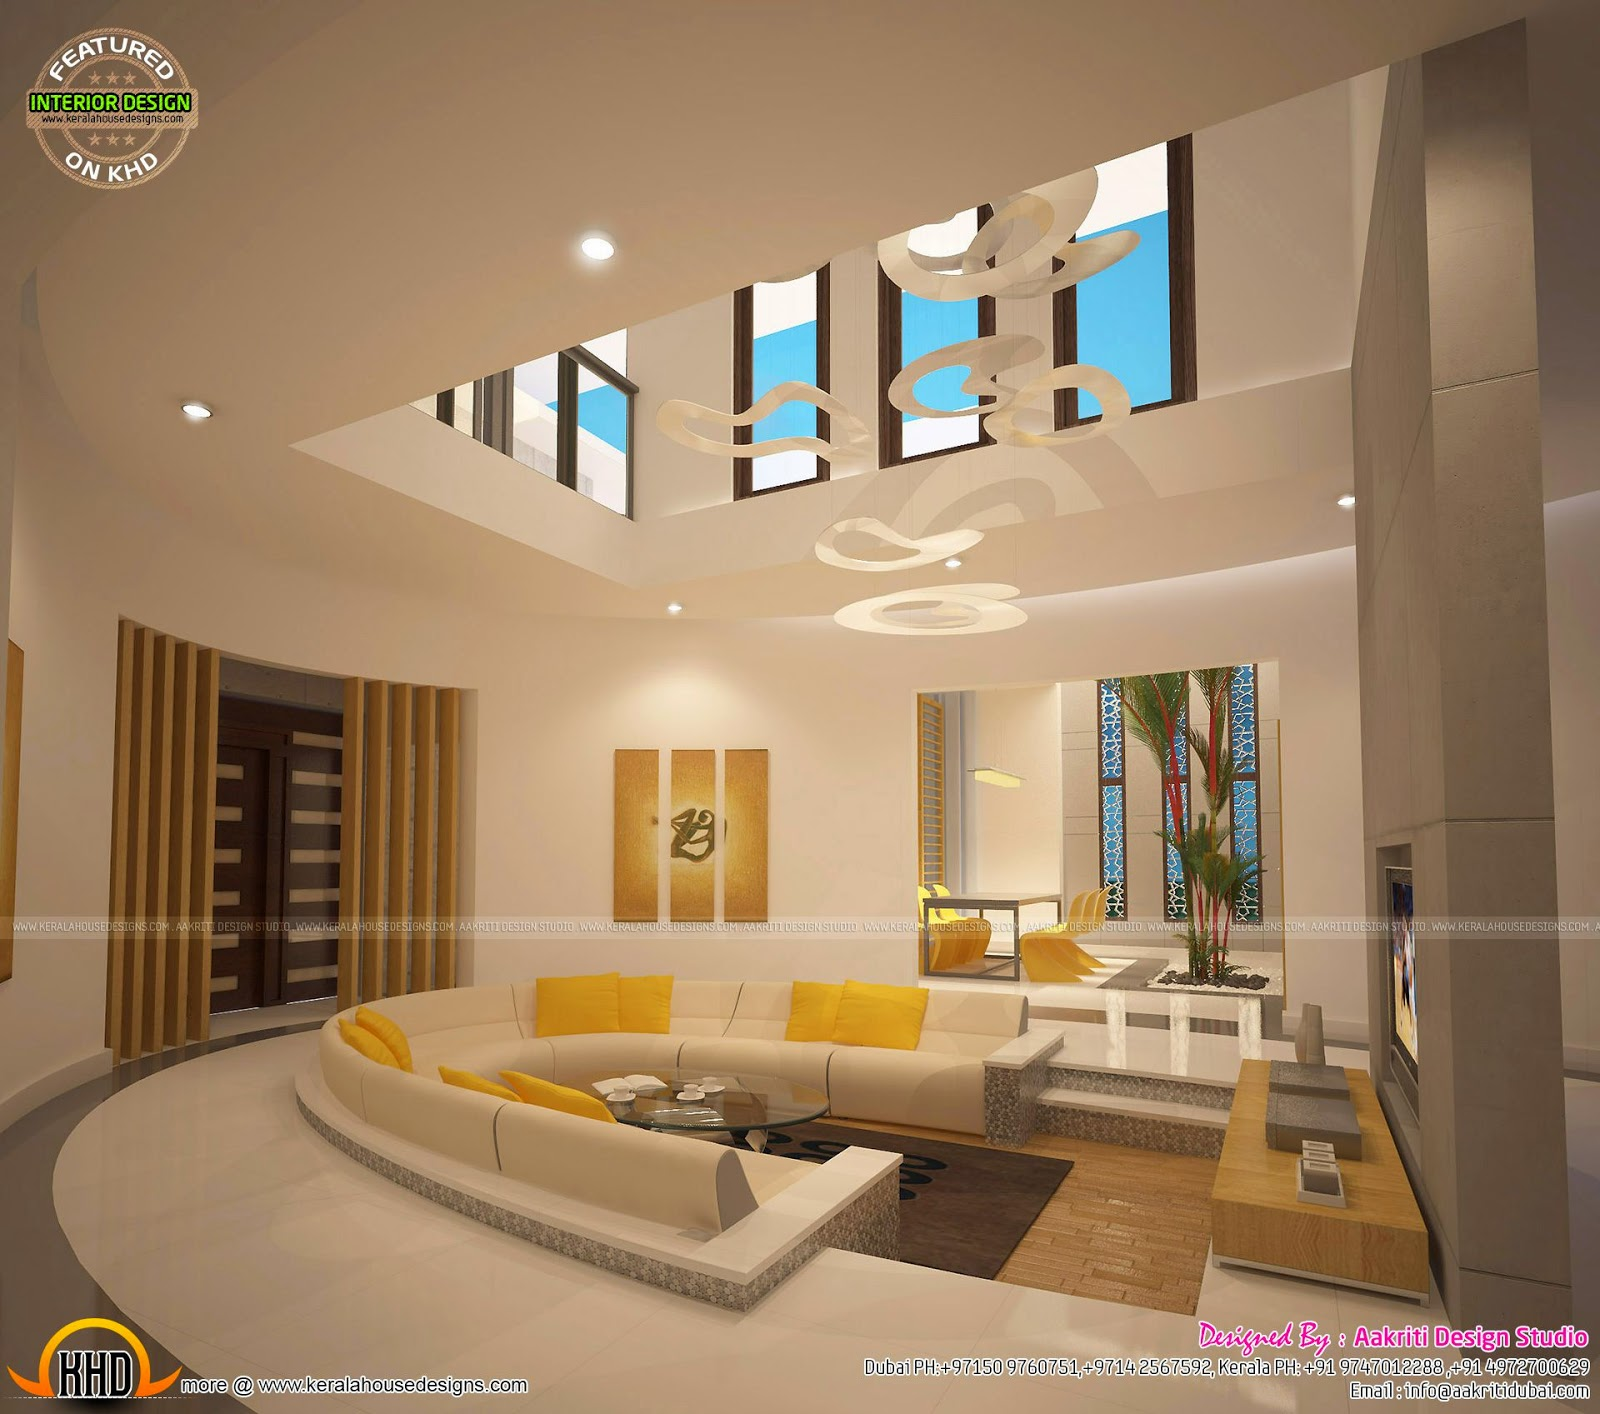 Awesome interiors of living kitchen and bathroom kerala for Interior designs for homes pictures